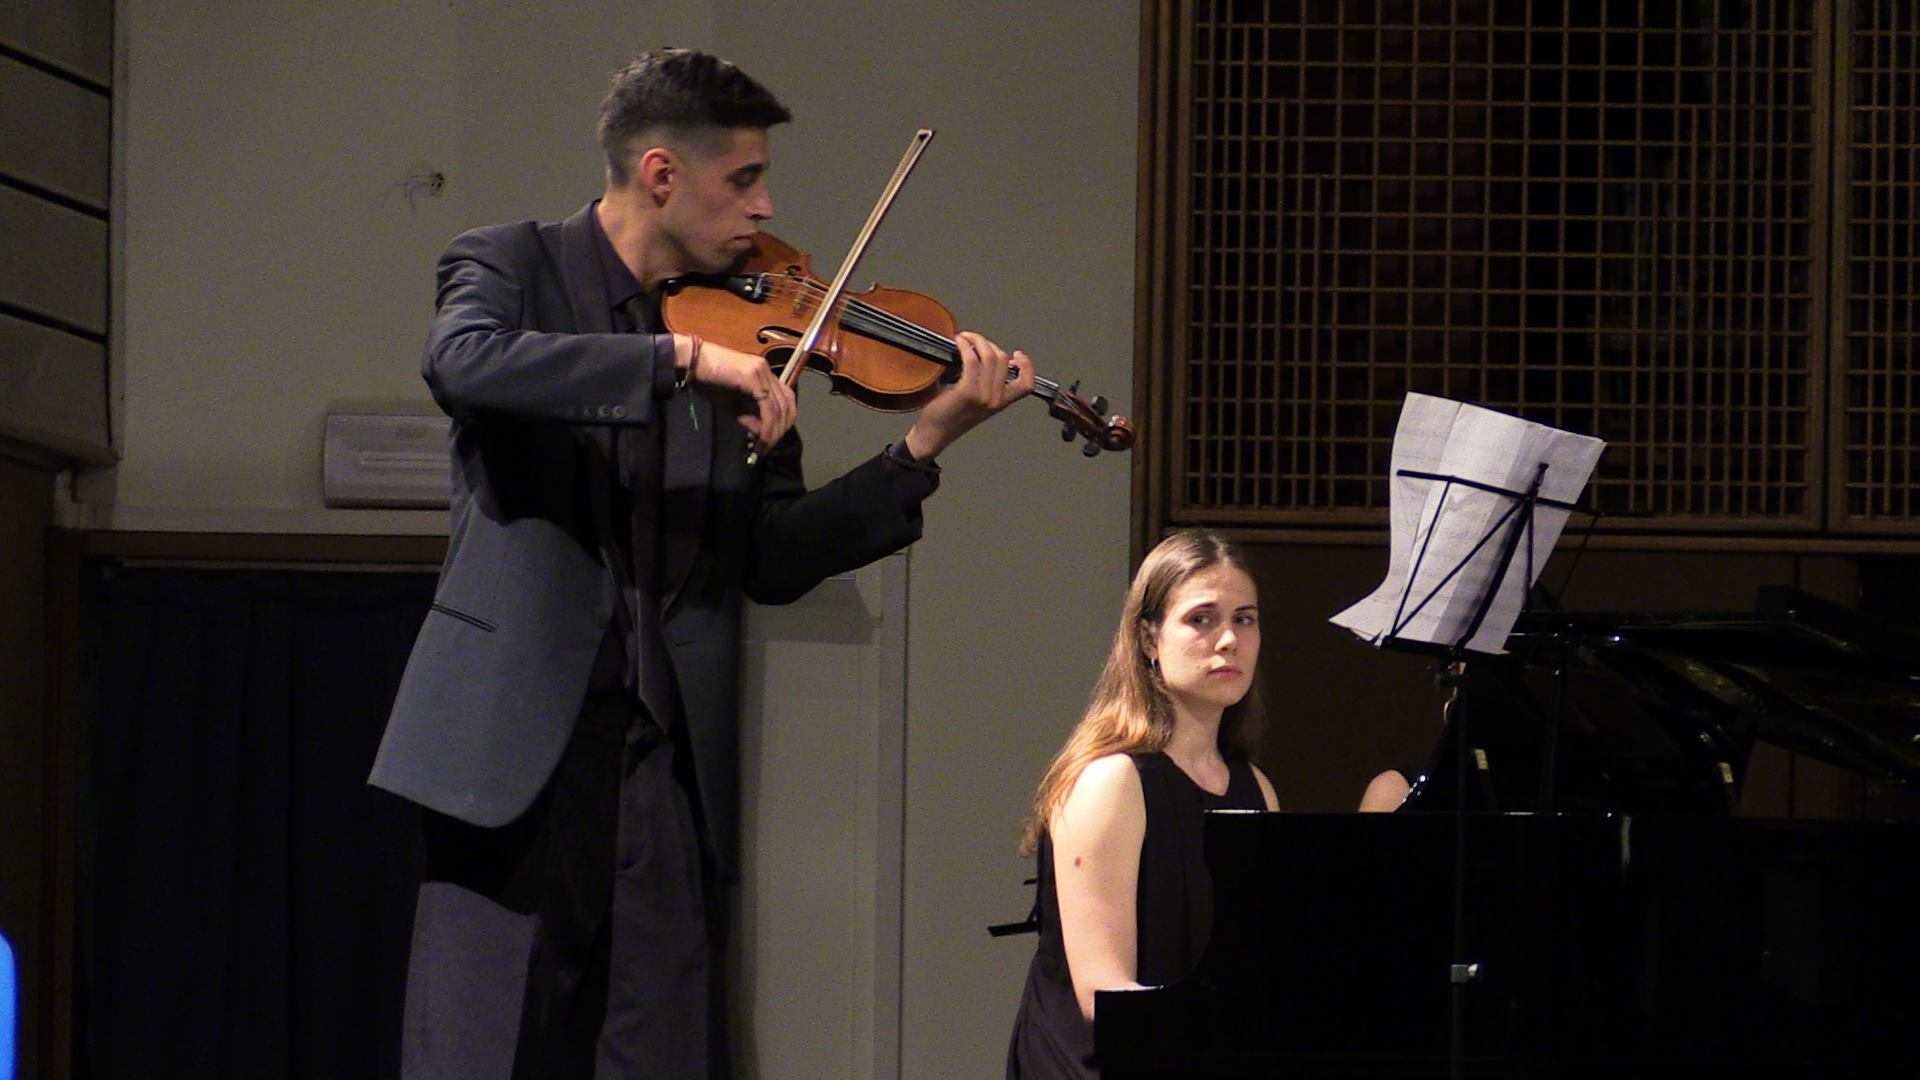 Essentia [vl & pno] – first performance by Duo NED Ensemble @Desenzano, Italy